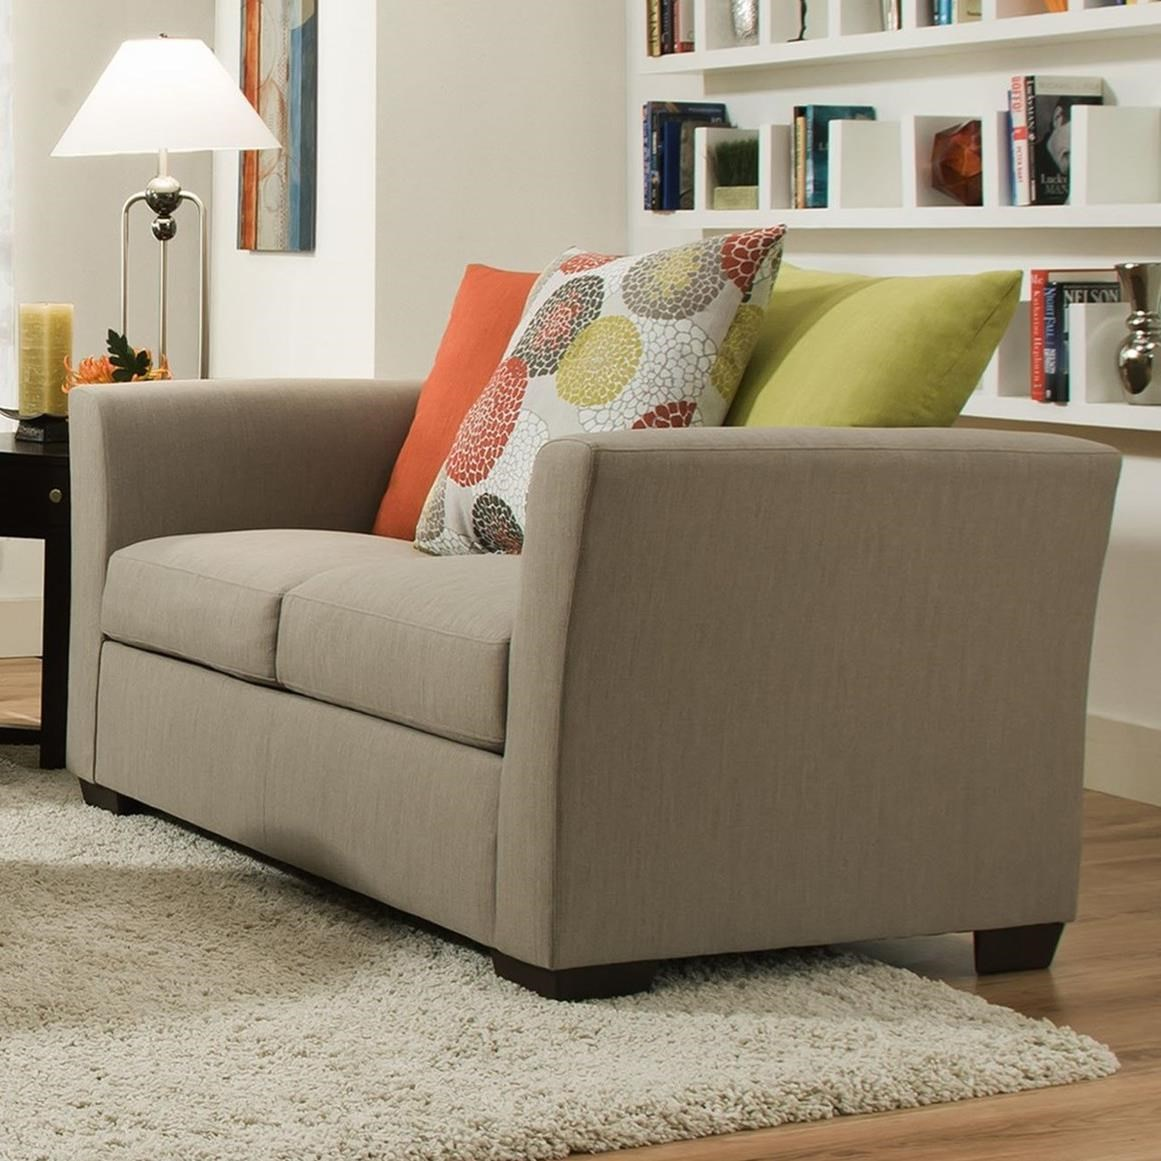 United Furniture Industries 4201 Loveseat - Item Number: 4201Loveseat-FrenchGray